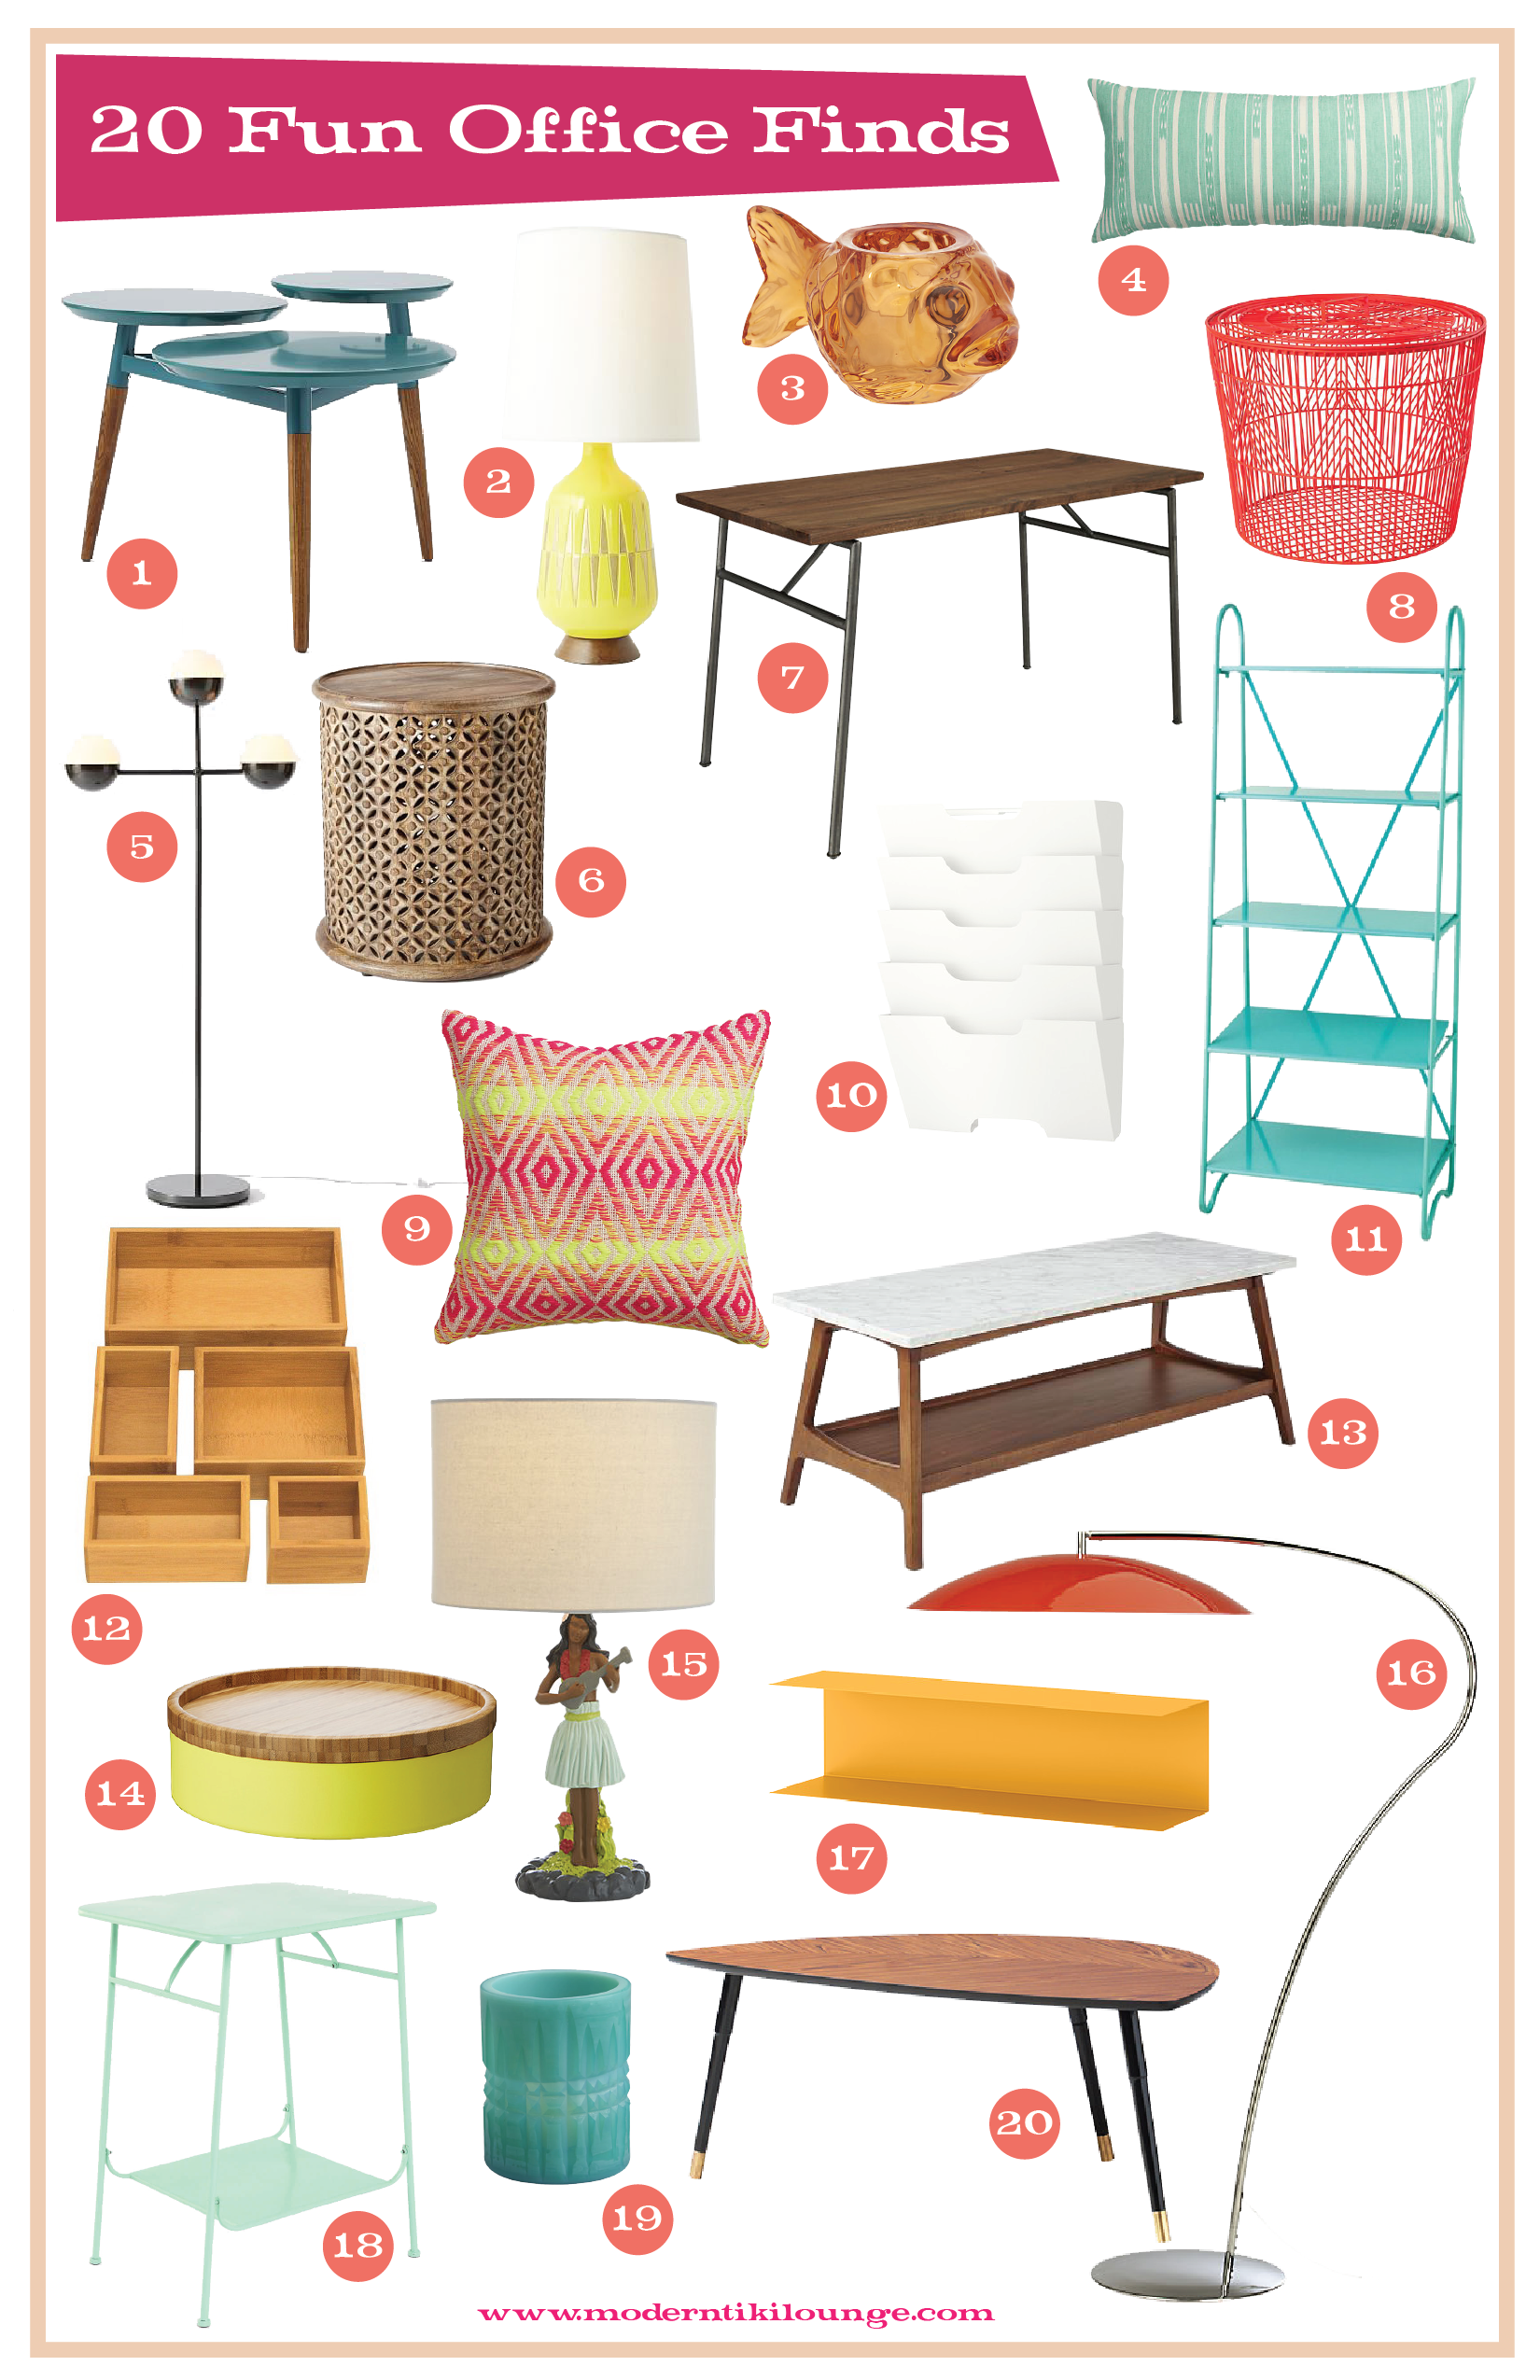 1.  clover coffee table    2.  MID-CENTURY TABLE LAMP - bottle    3.  FIN CANDLE HOLDER    4.  IKAT AQUA PILLOW    5.  kate spade saturday globe lamp    6.  carved wood side table    7.  Lecture desk    8.  good vibe floor bin    9.  neon prism knit pillow    10.  kvissle wall magazine rack    11.  fifth floor shelf    12.  seville bamboo organizer boxes    13.  reeve mid-century rectangular coffee table    14.  valkand bowl and dish    15.  hula lamp    16.  atomic arc floor lamp    17.  botkyrka wall shelf    18.  factory side table    19.  hoth candle holder    20.  lovbacken coffee table